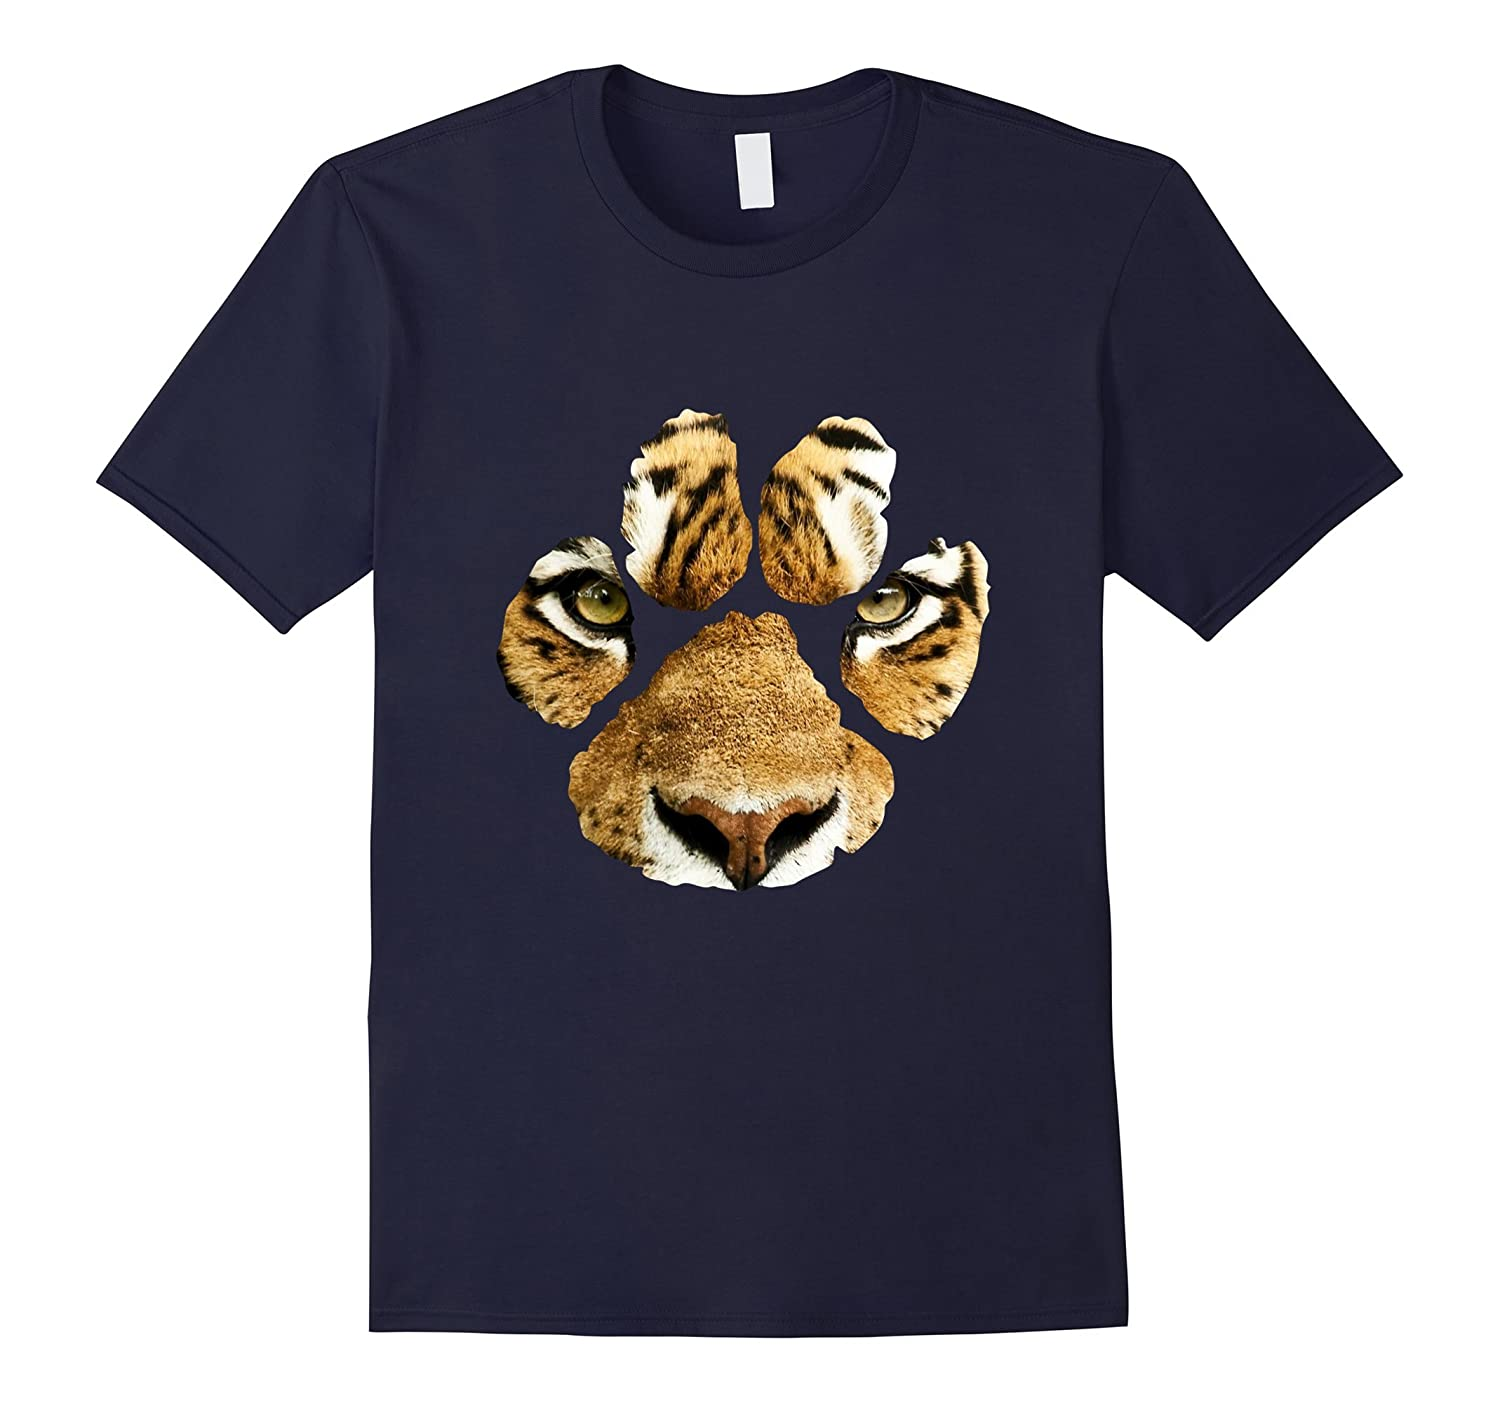 Awesome Tiger Paw Print T-Shirt - Mens & Womens & Kids-FL